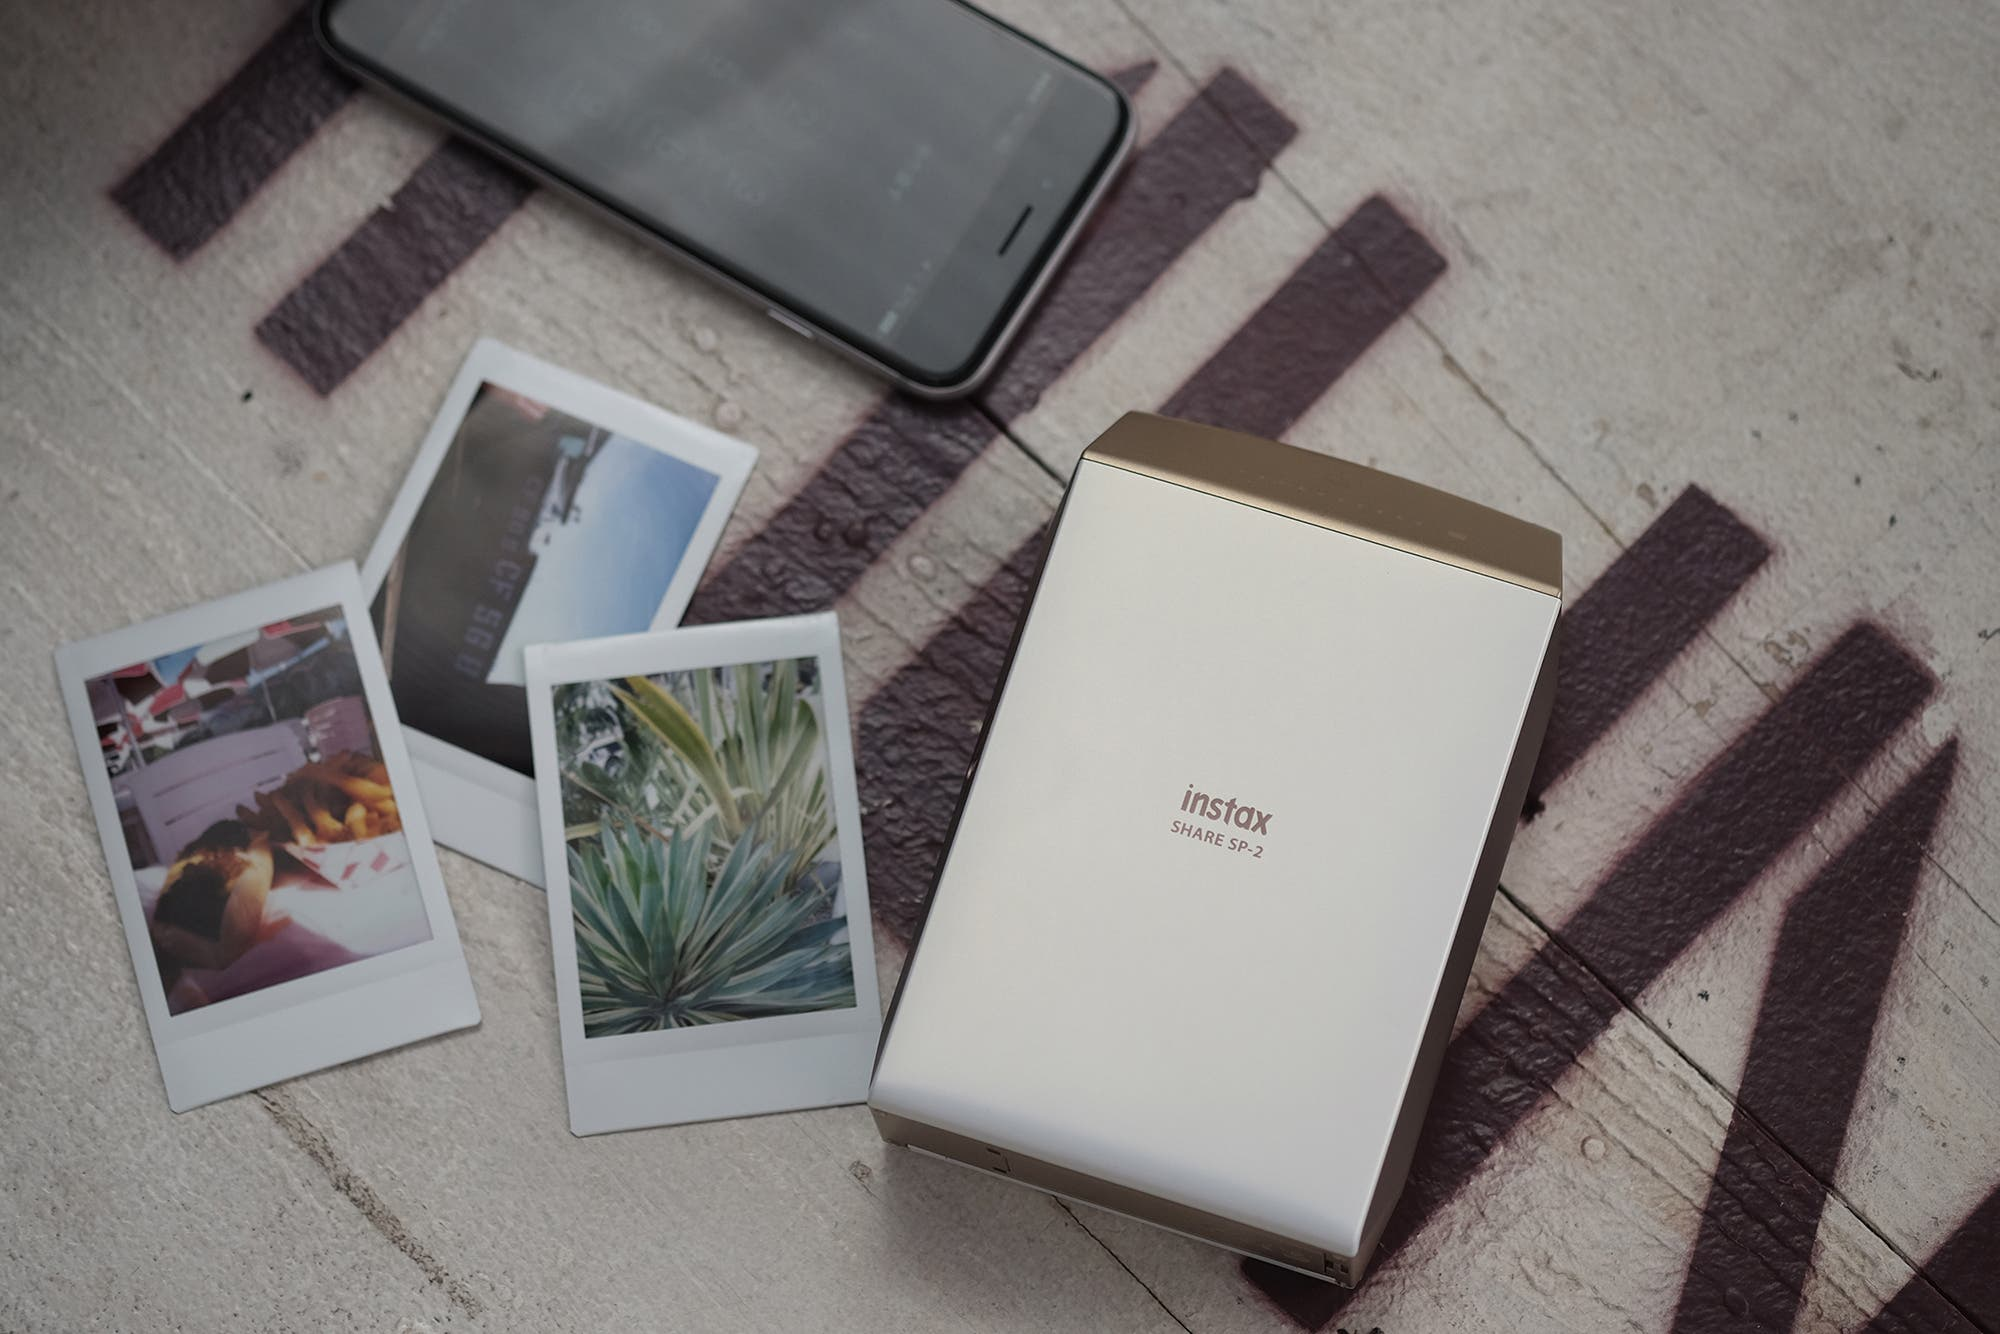 The Fujifilm instax SHARE SP-2 Lets You Add Filters and Collages to Your Instax Prints